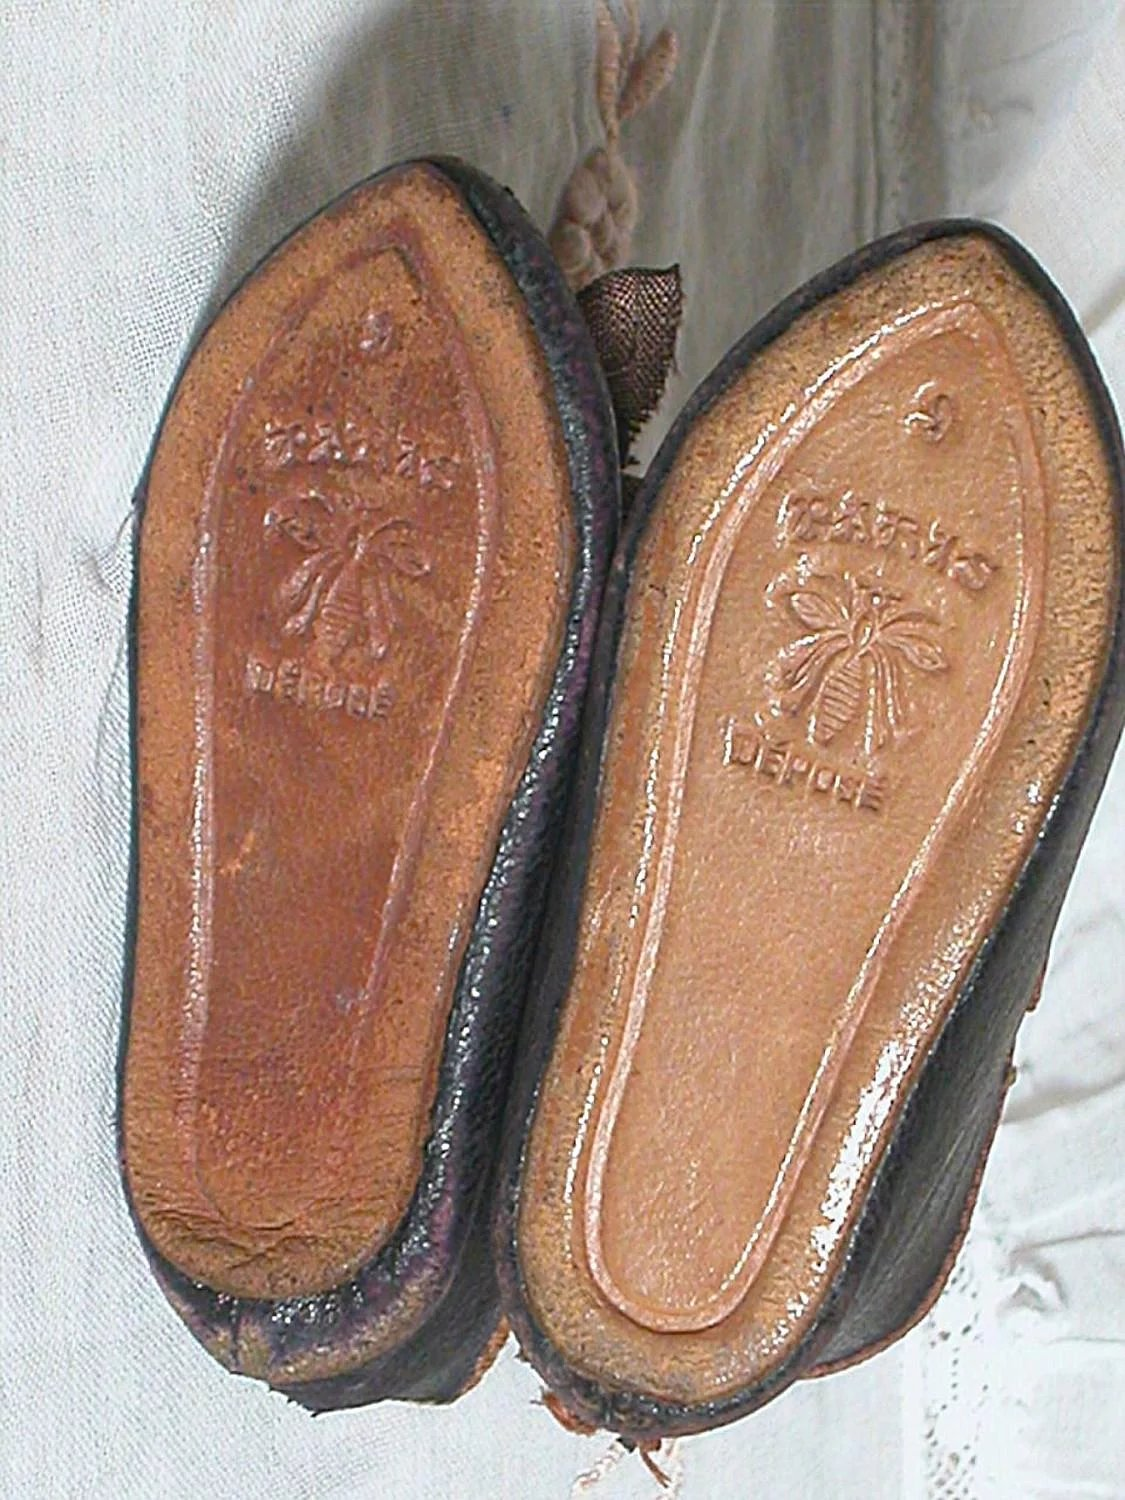 One Leather Shoes Darker Than Other